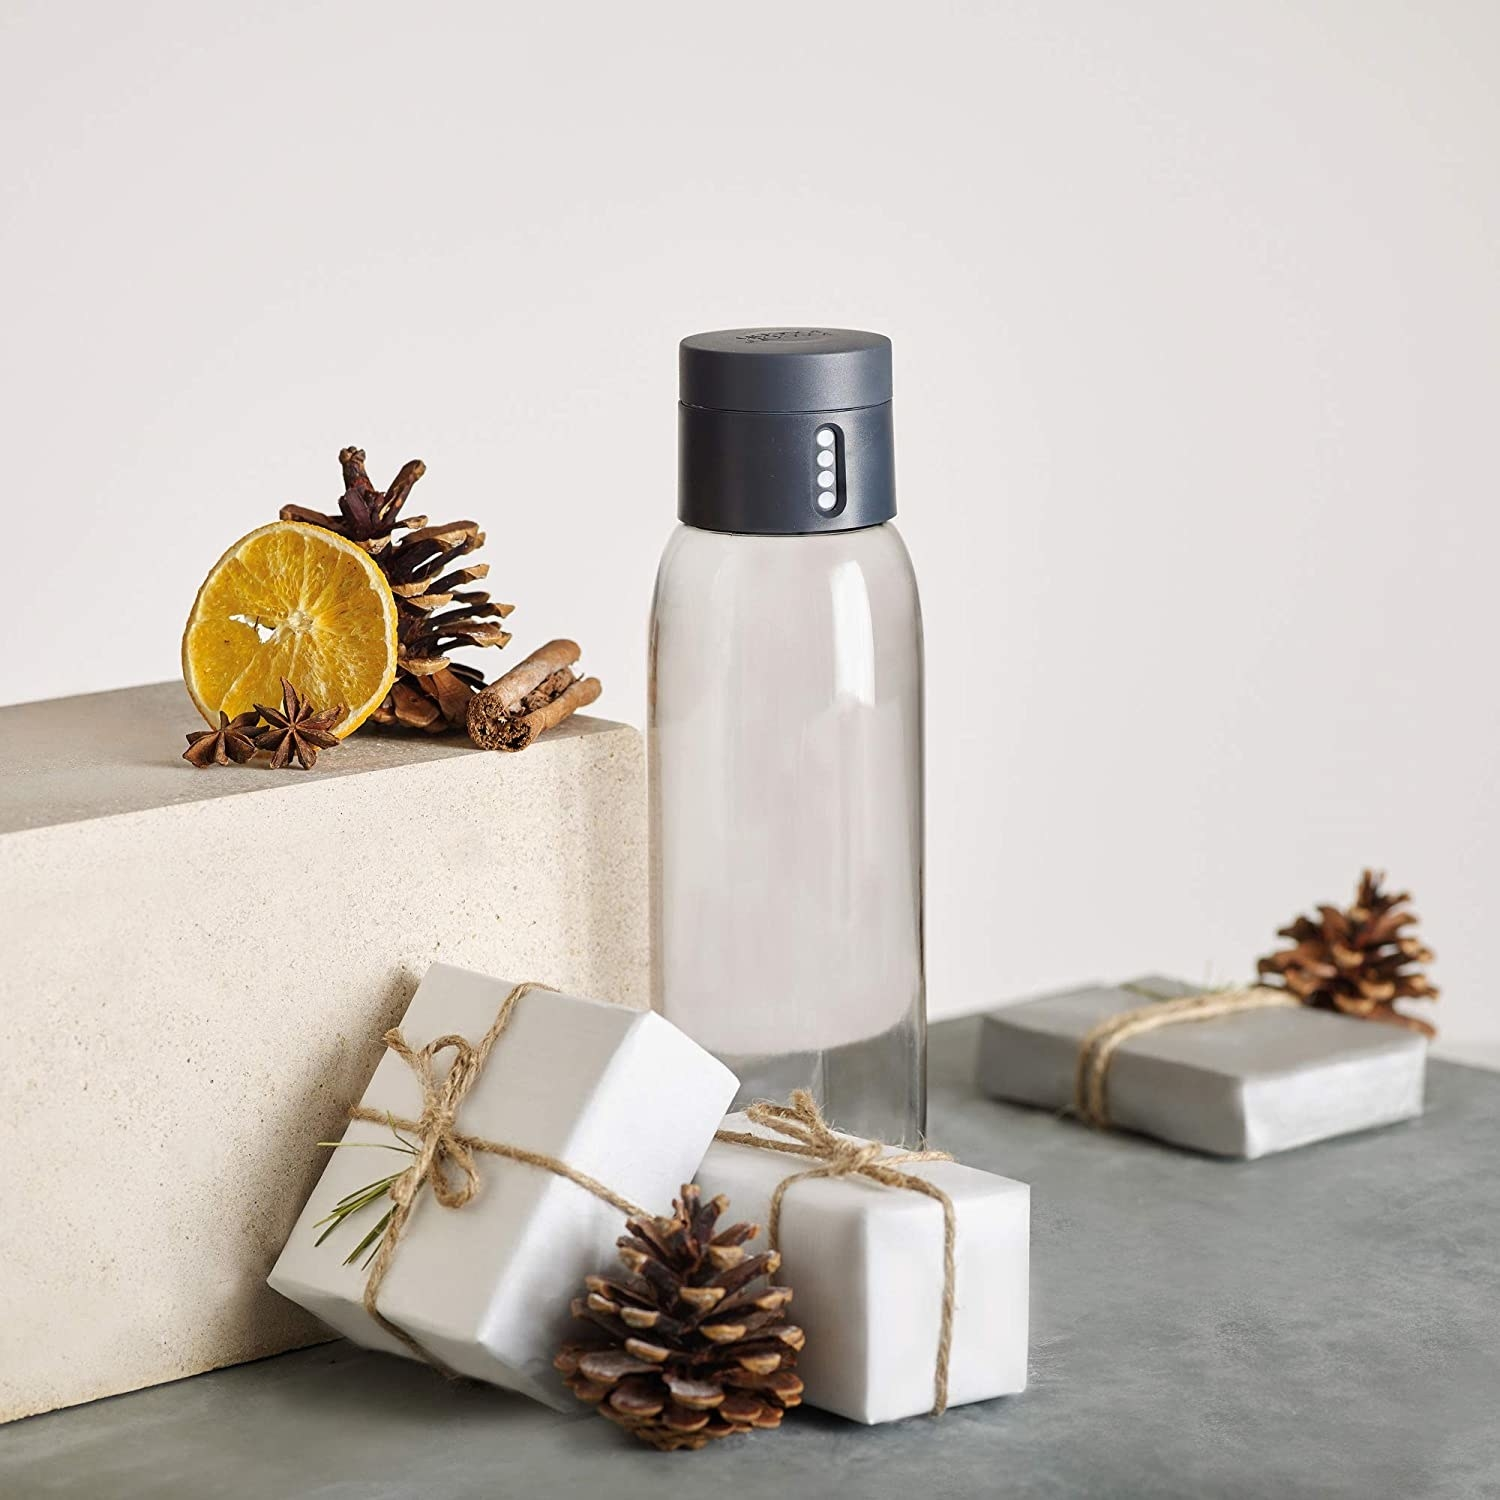 water bottle on a table surrounded by gift boxes and pine cones